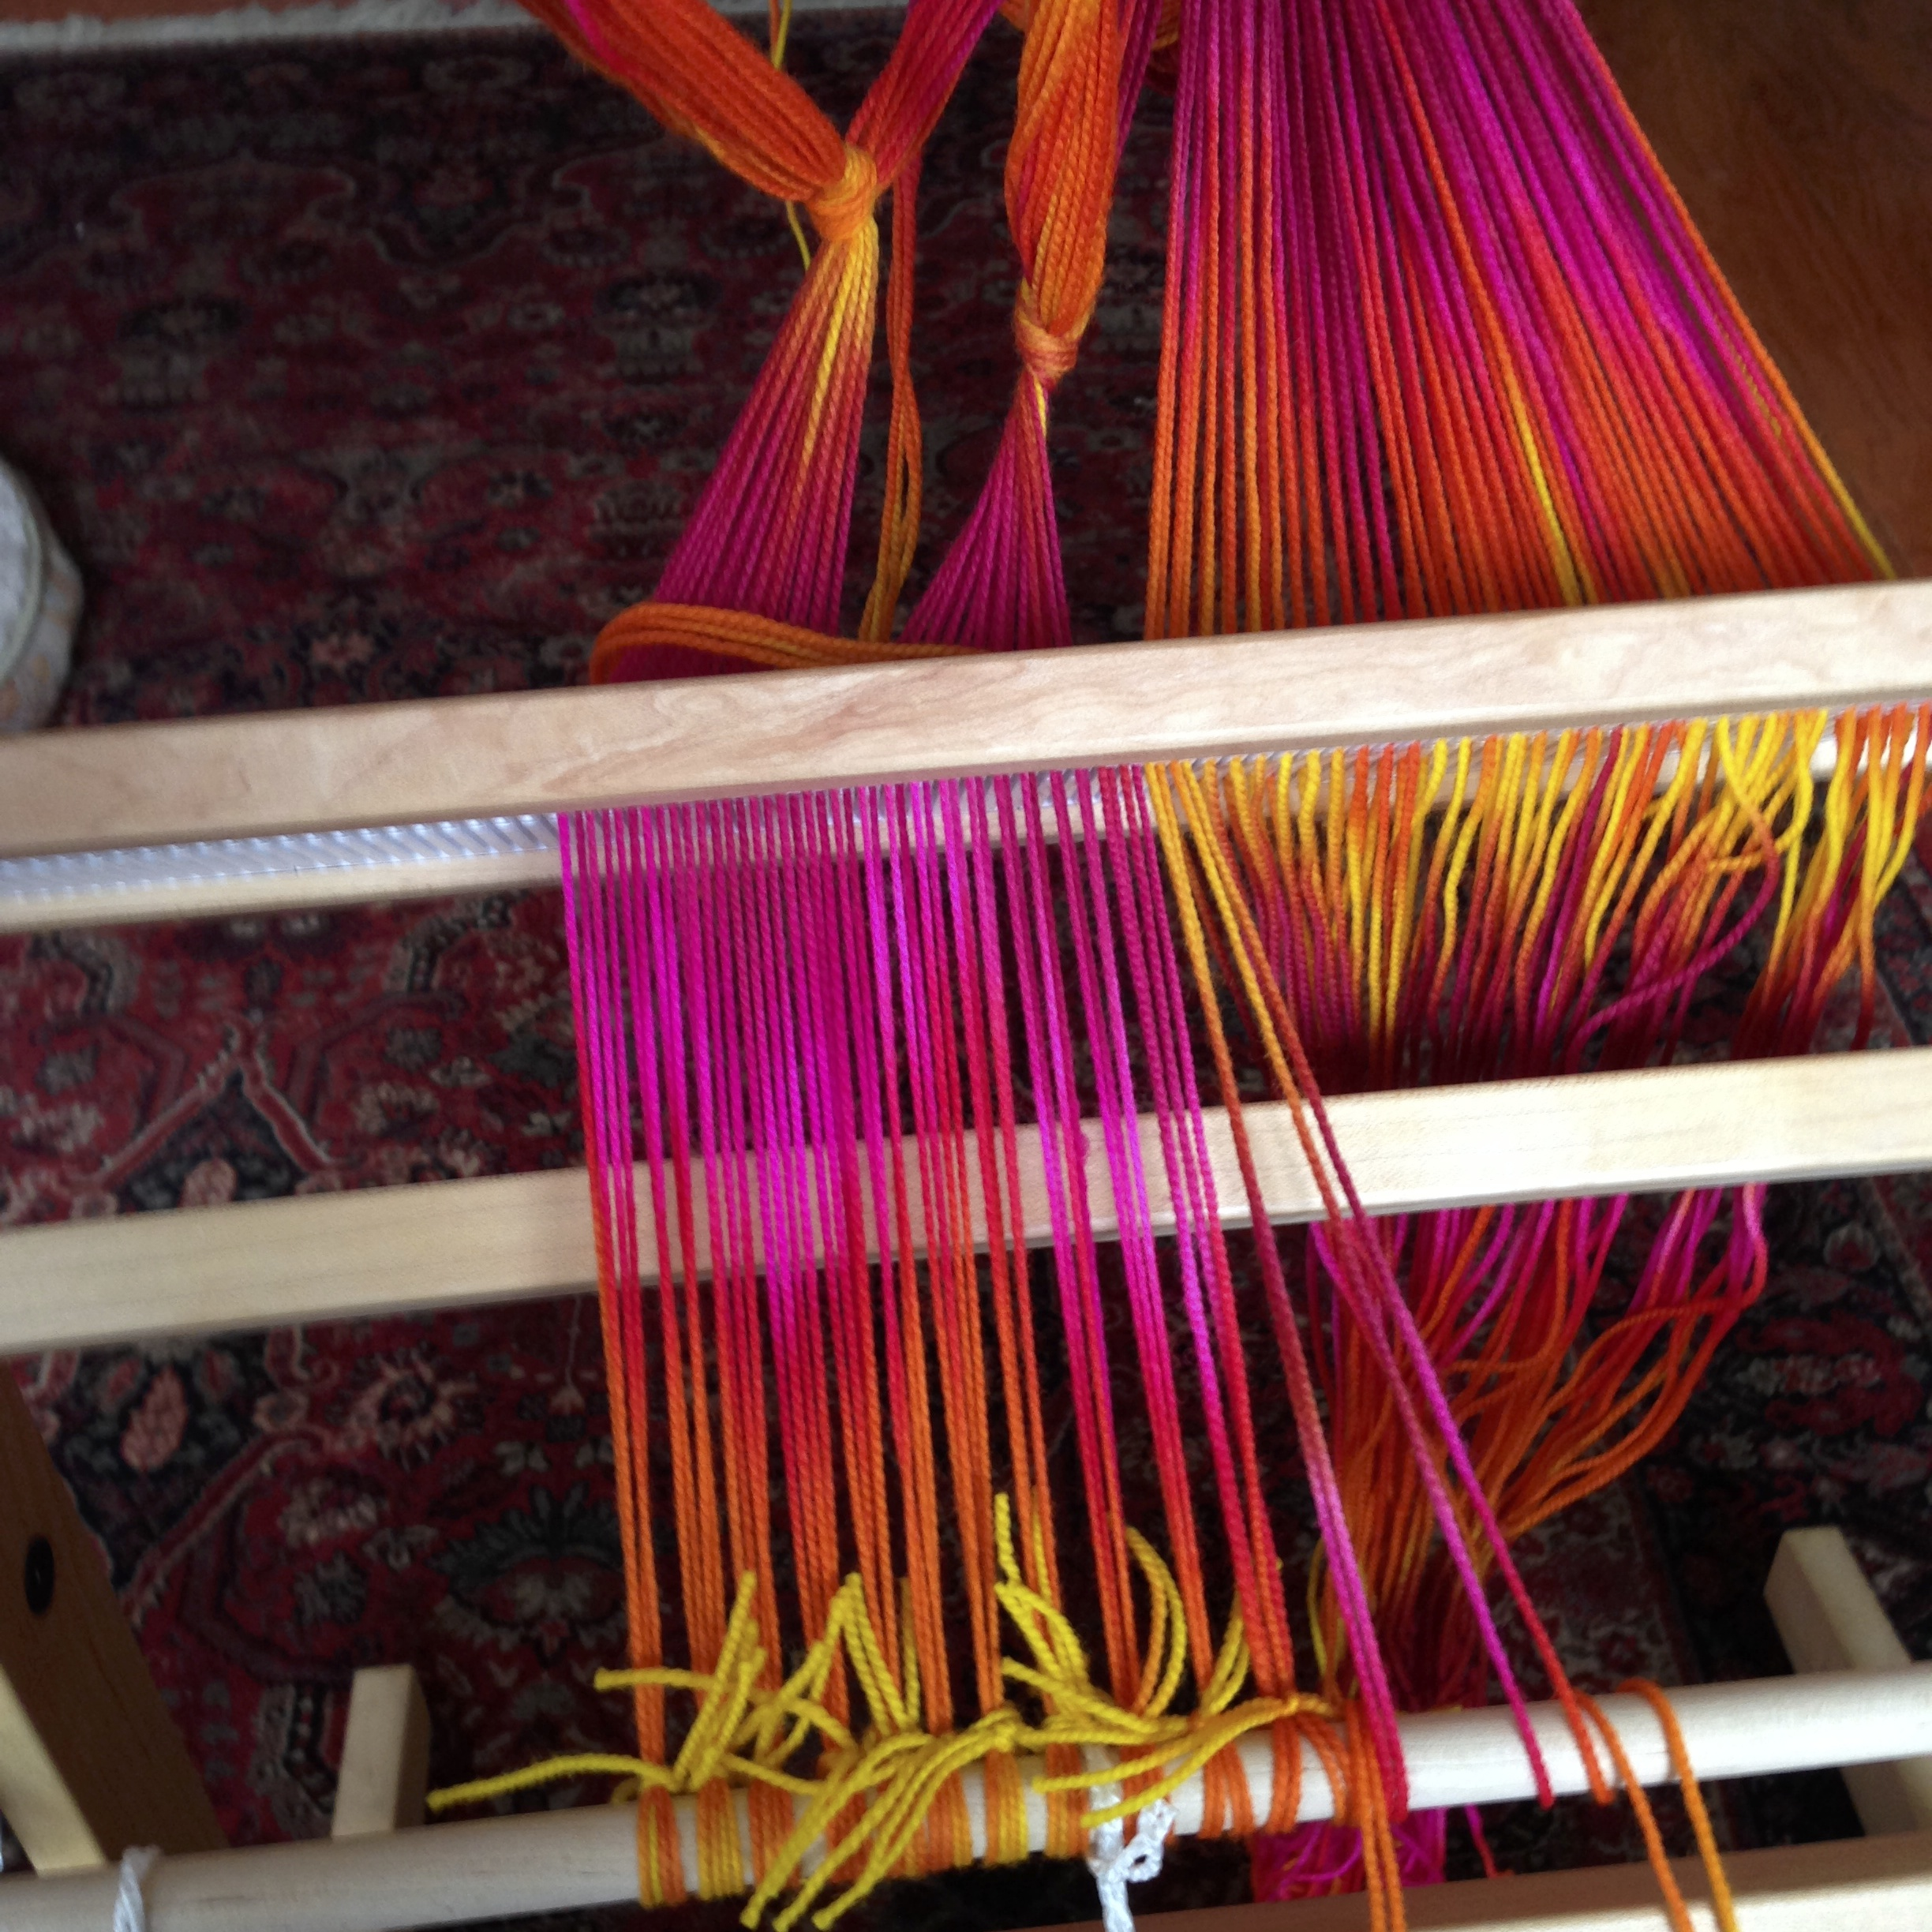 Weaving | Hi, my name is Fyreball and I'm a fiber fanatic